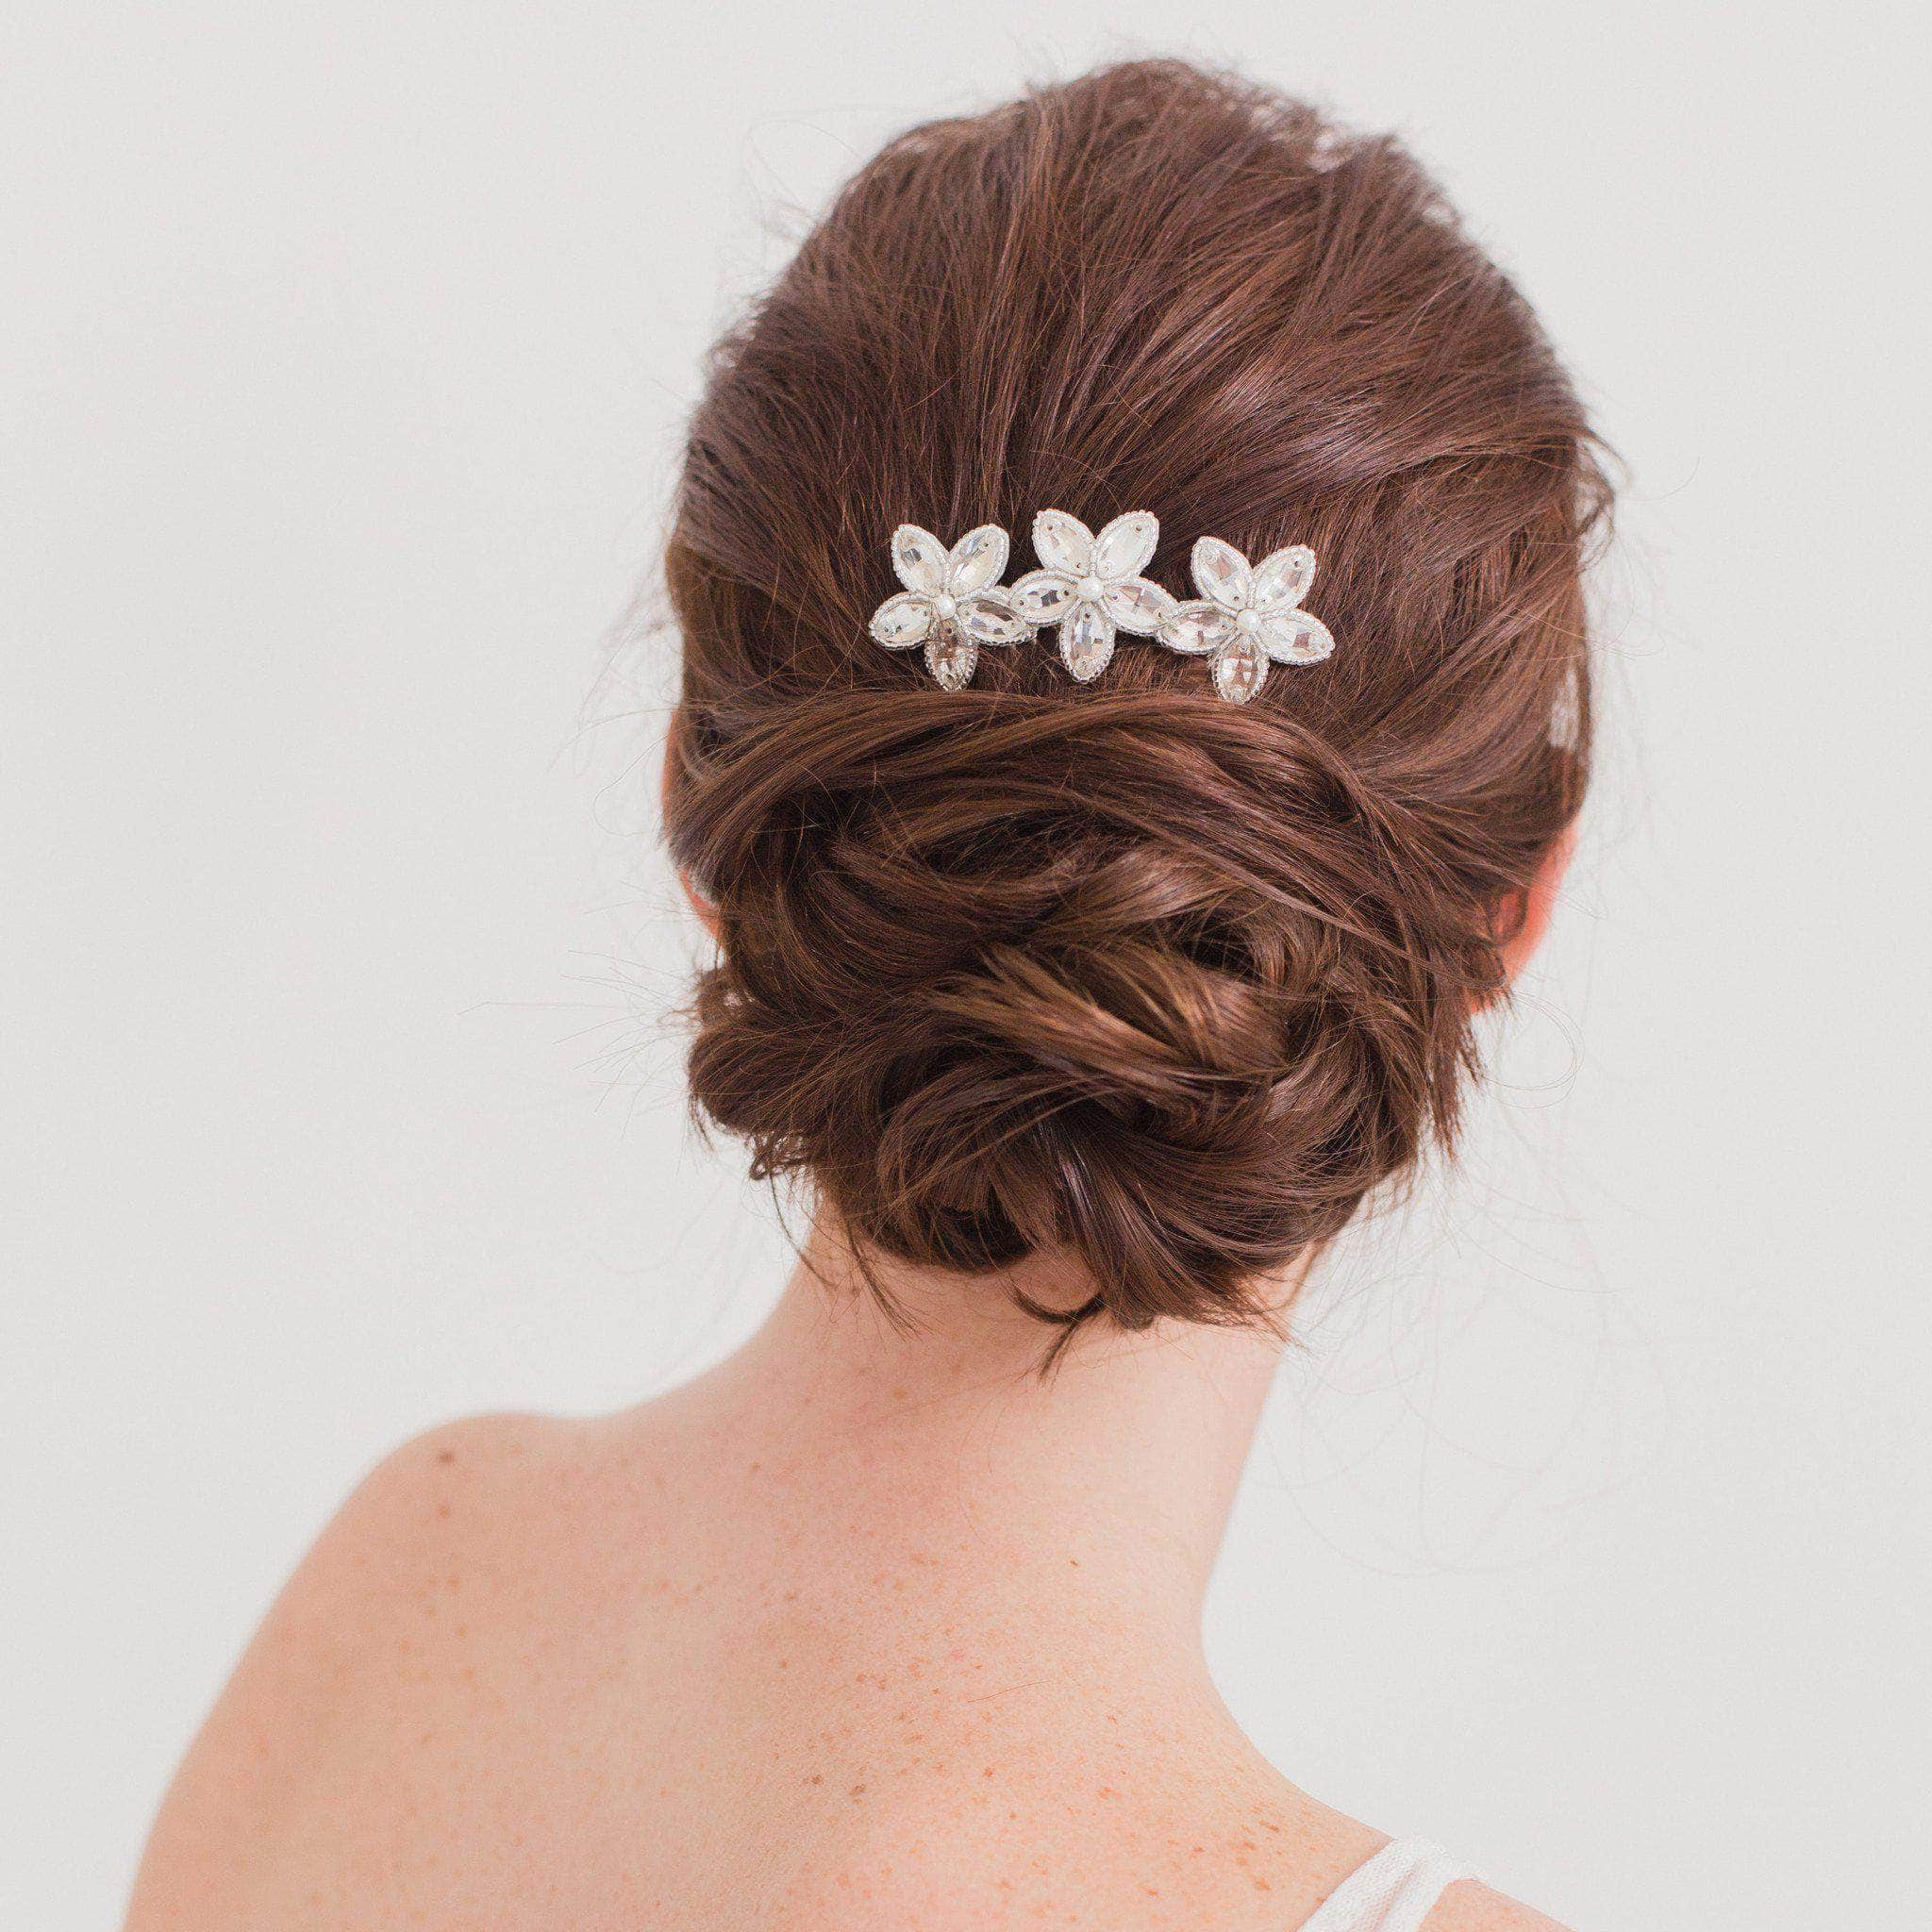 bridal hair comb with a floral arrangement of crystals and pearls ella wedding hair combs silver wedding hair comb